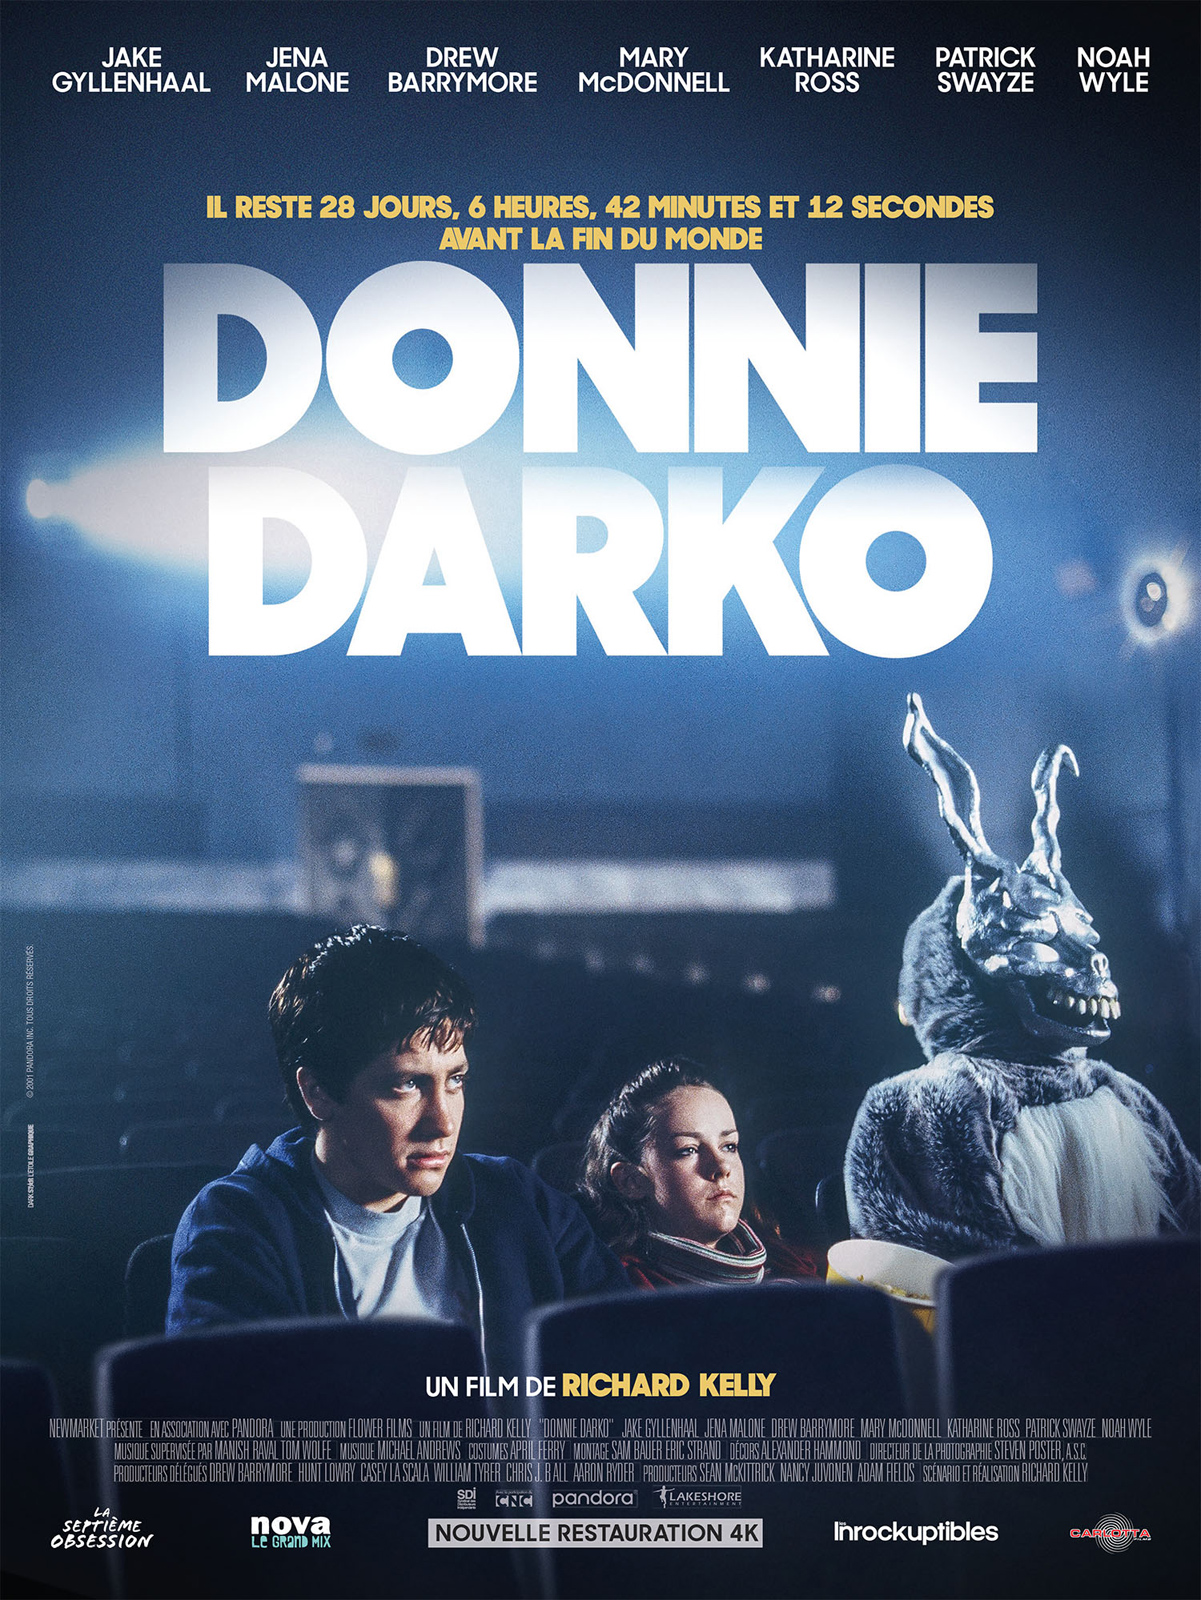 La Chambre Bleue Synopsis Donnie Darko Film 2002 Allociné